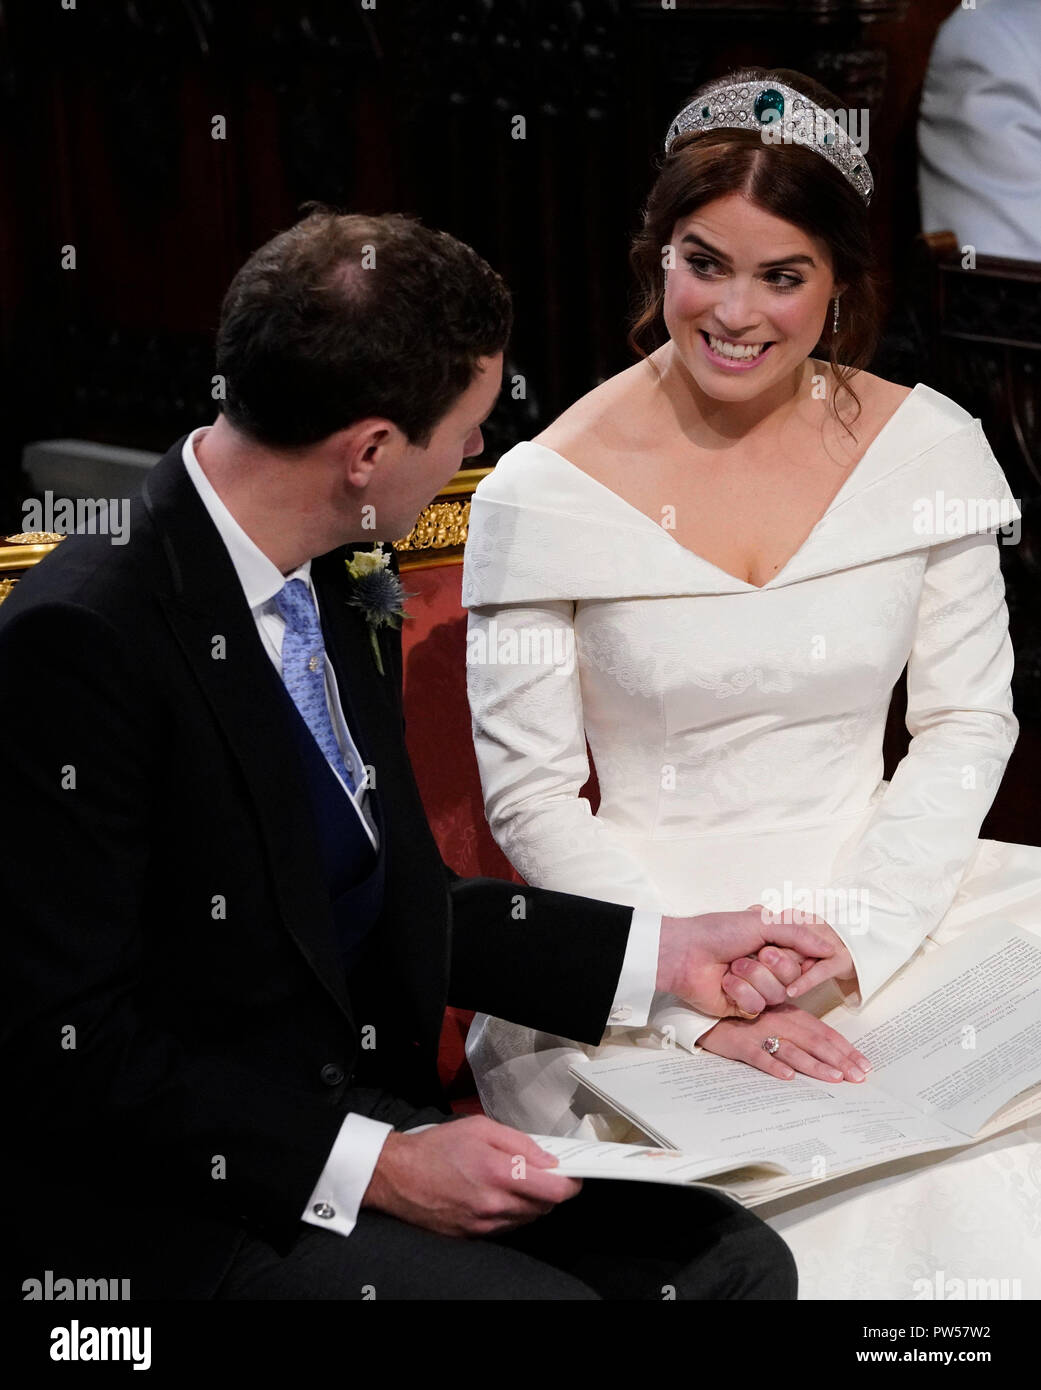 Princess Eugenie And Her Husband Jack Brooksbank During Their Wedding Ceremony At St George S Chapel In Windsor Castle Stock Photo Alamy